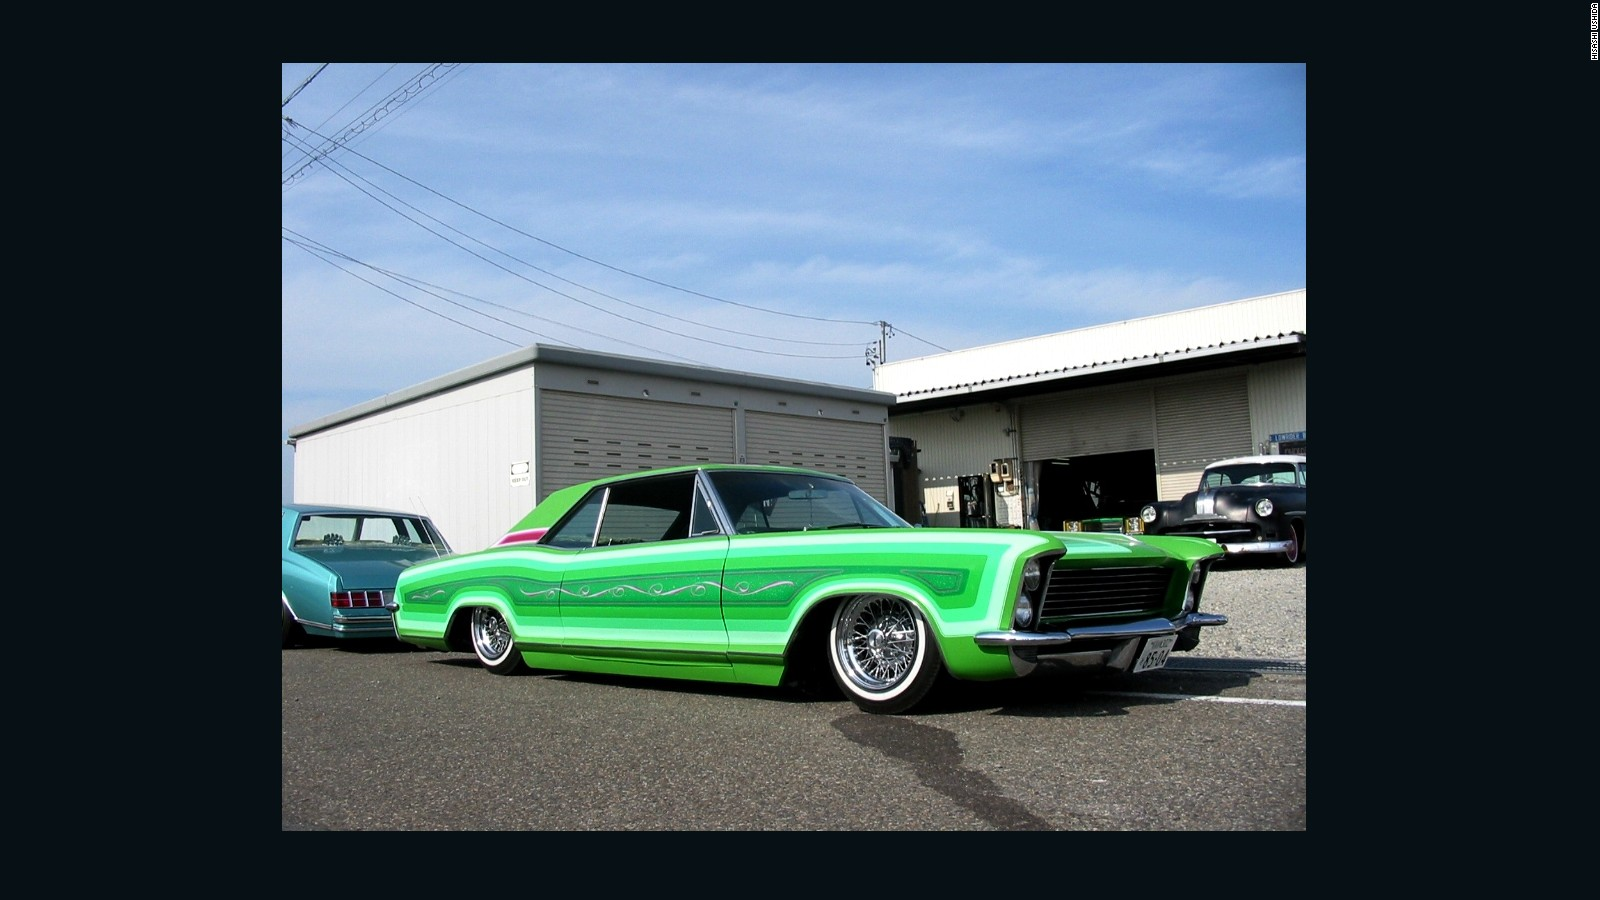 Meet Japan S Lowriders Cnn Style